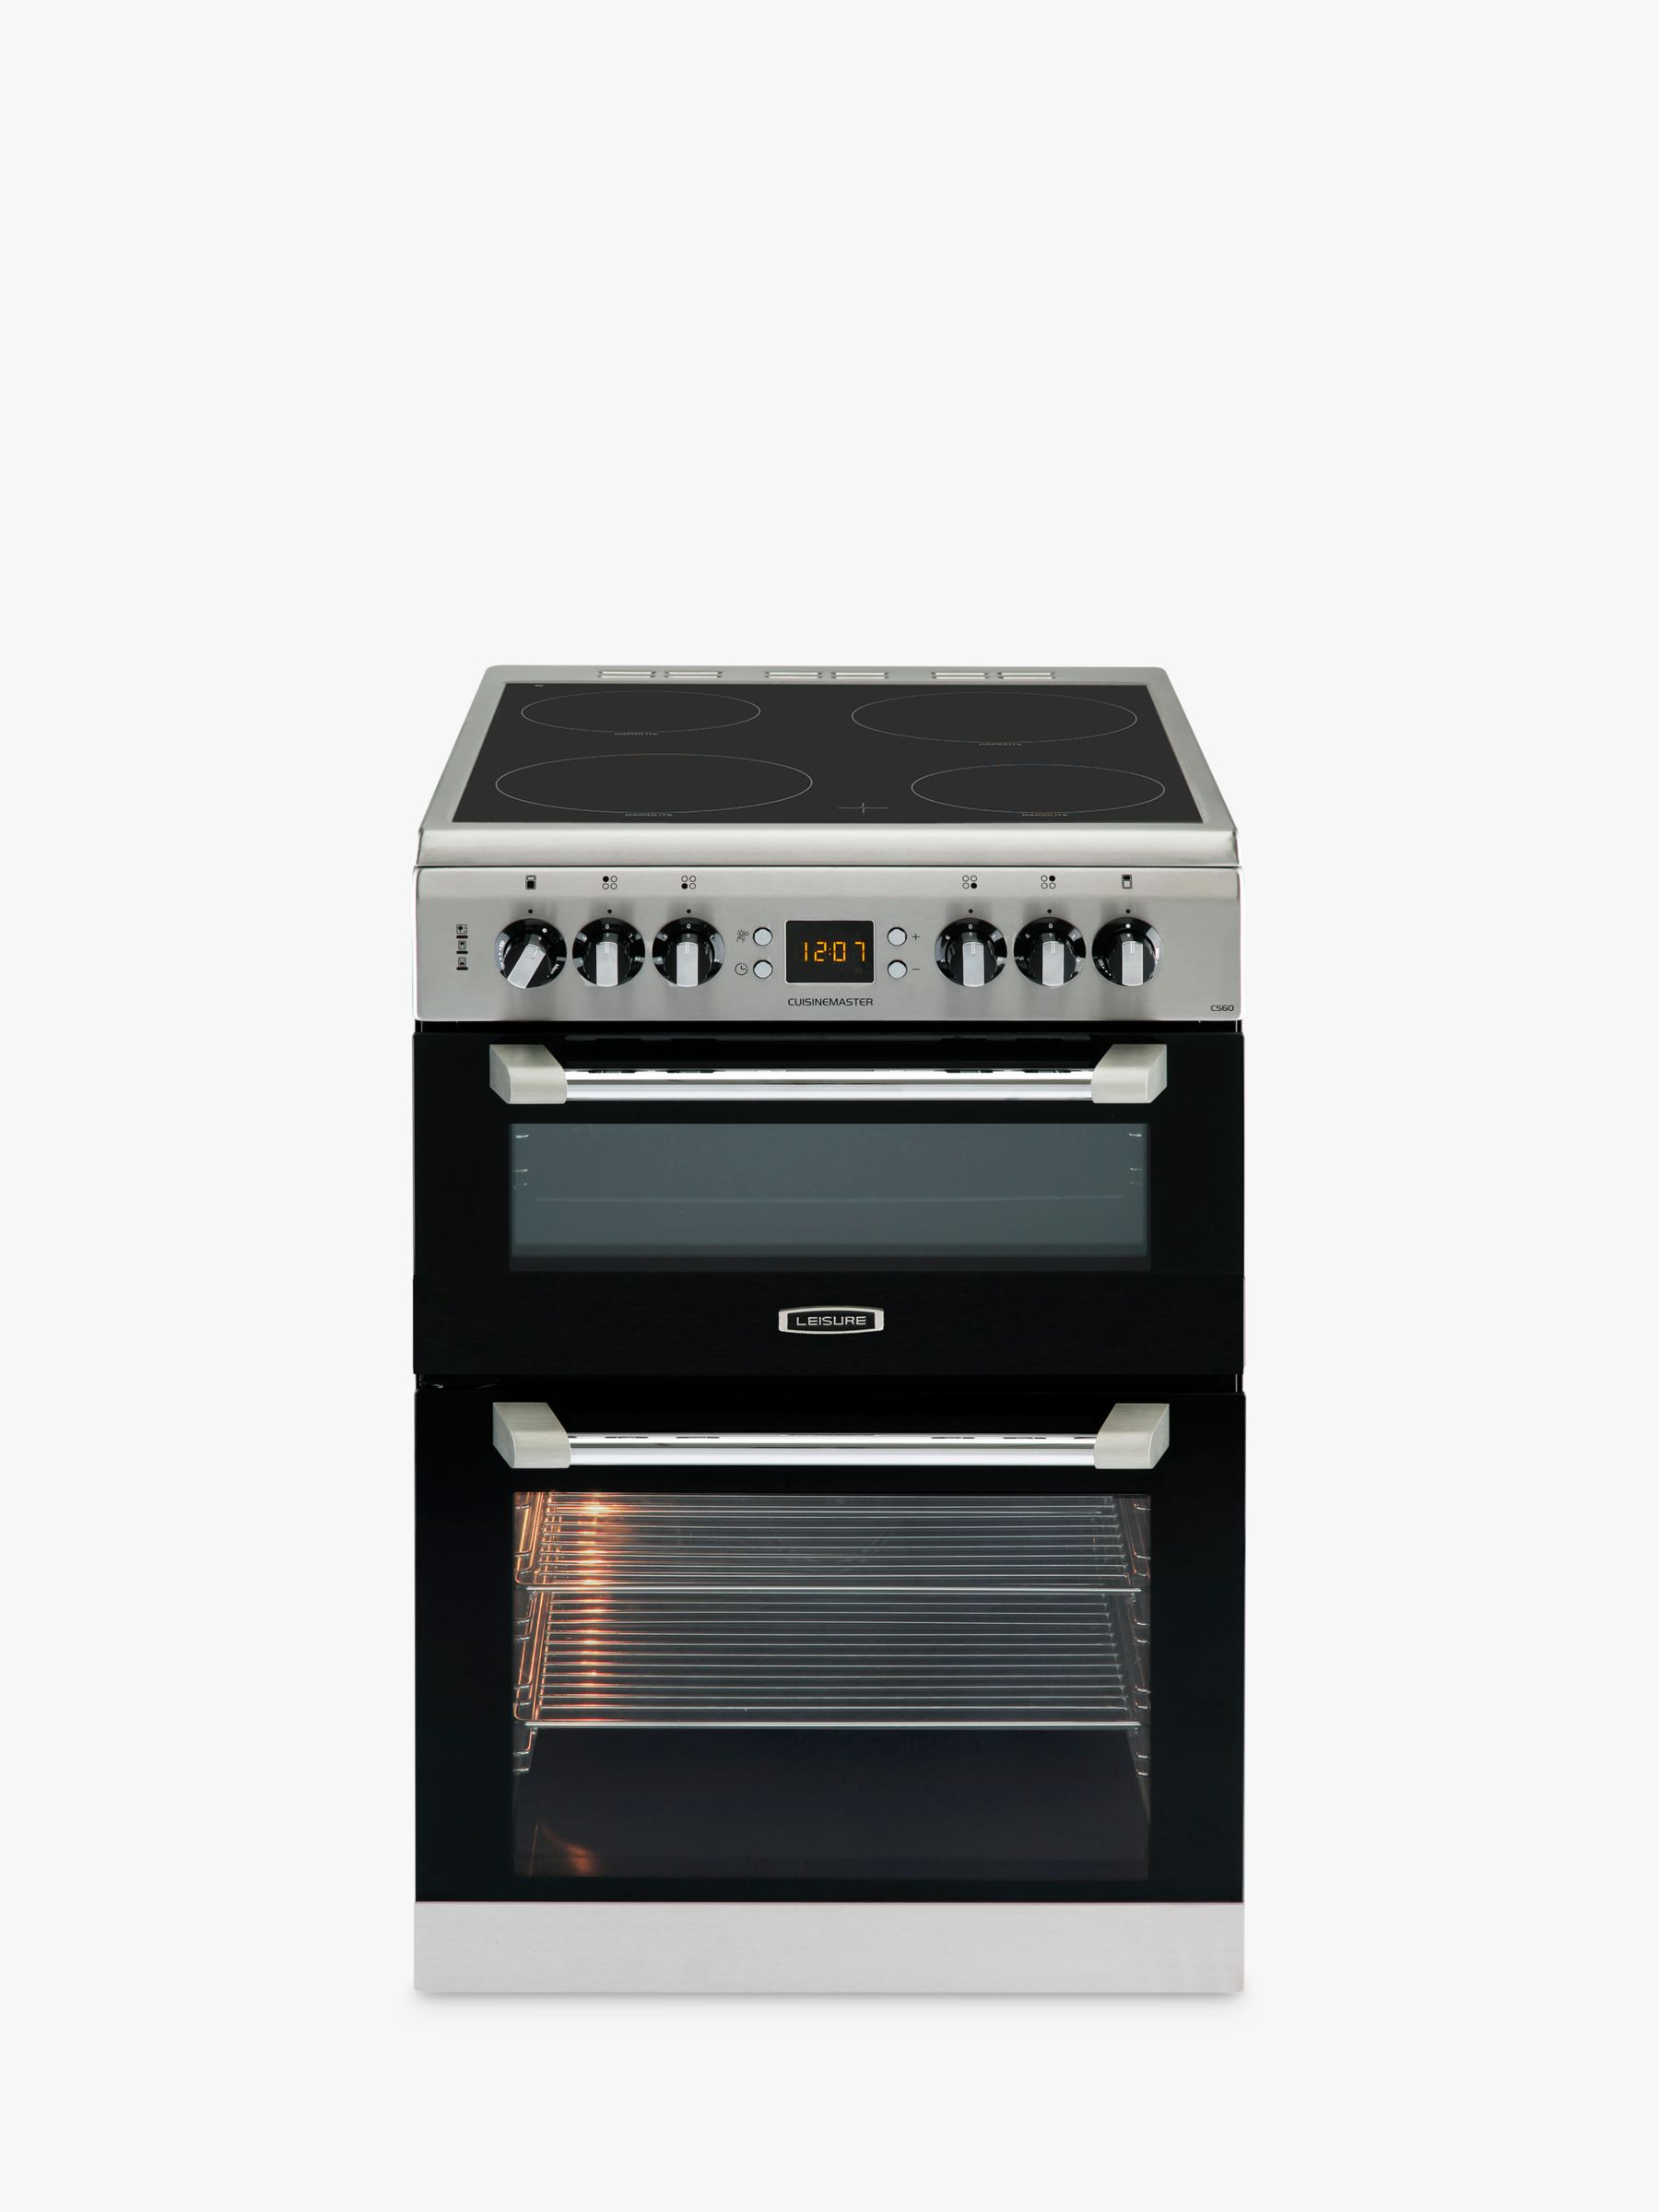 Leisure Leisure CS60 Cuisinemaster Freestanding Electric Cooker